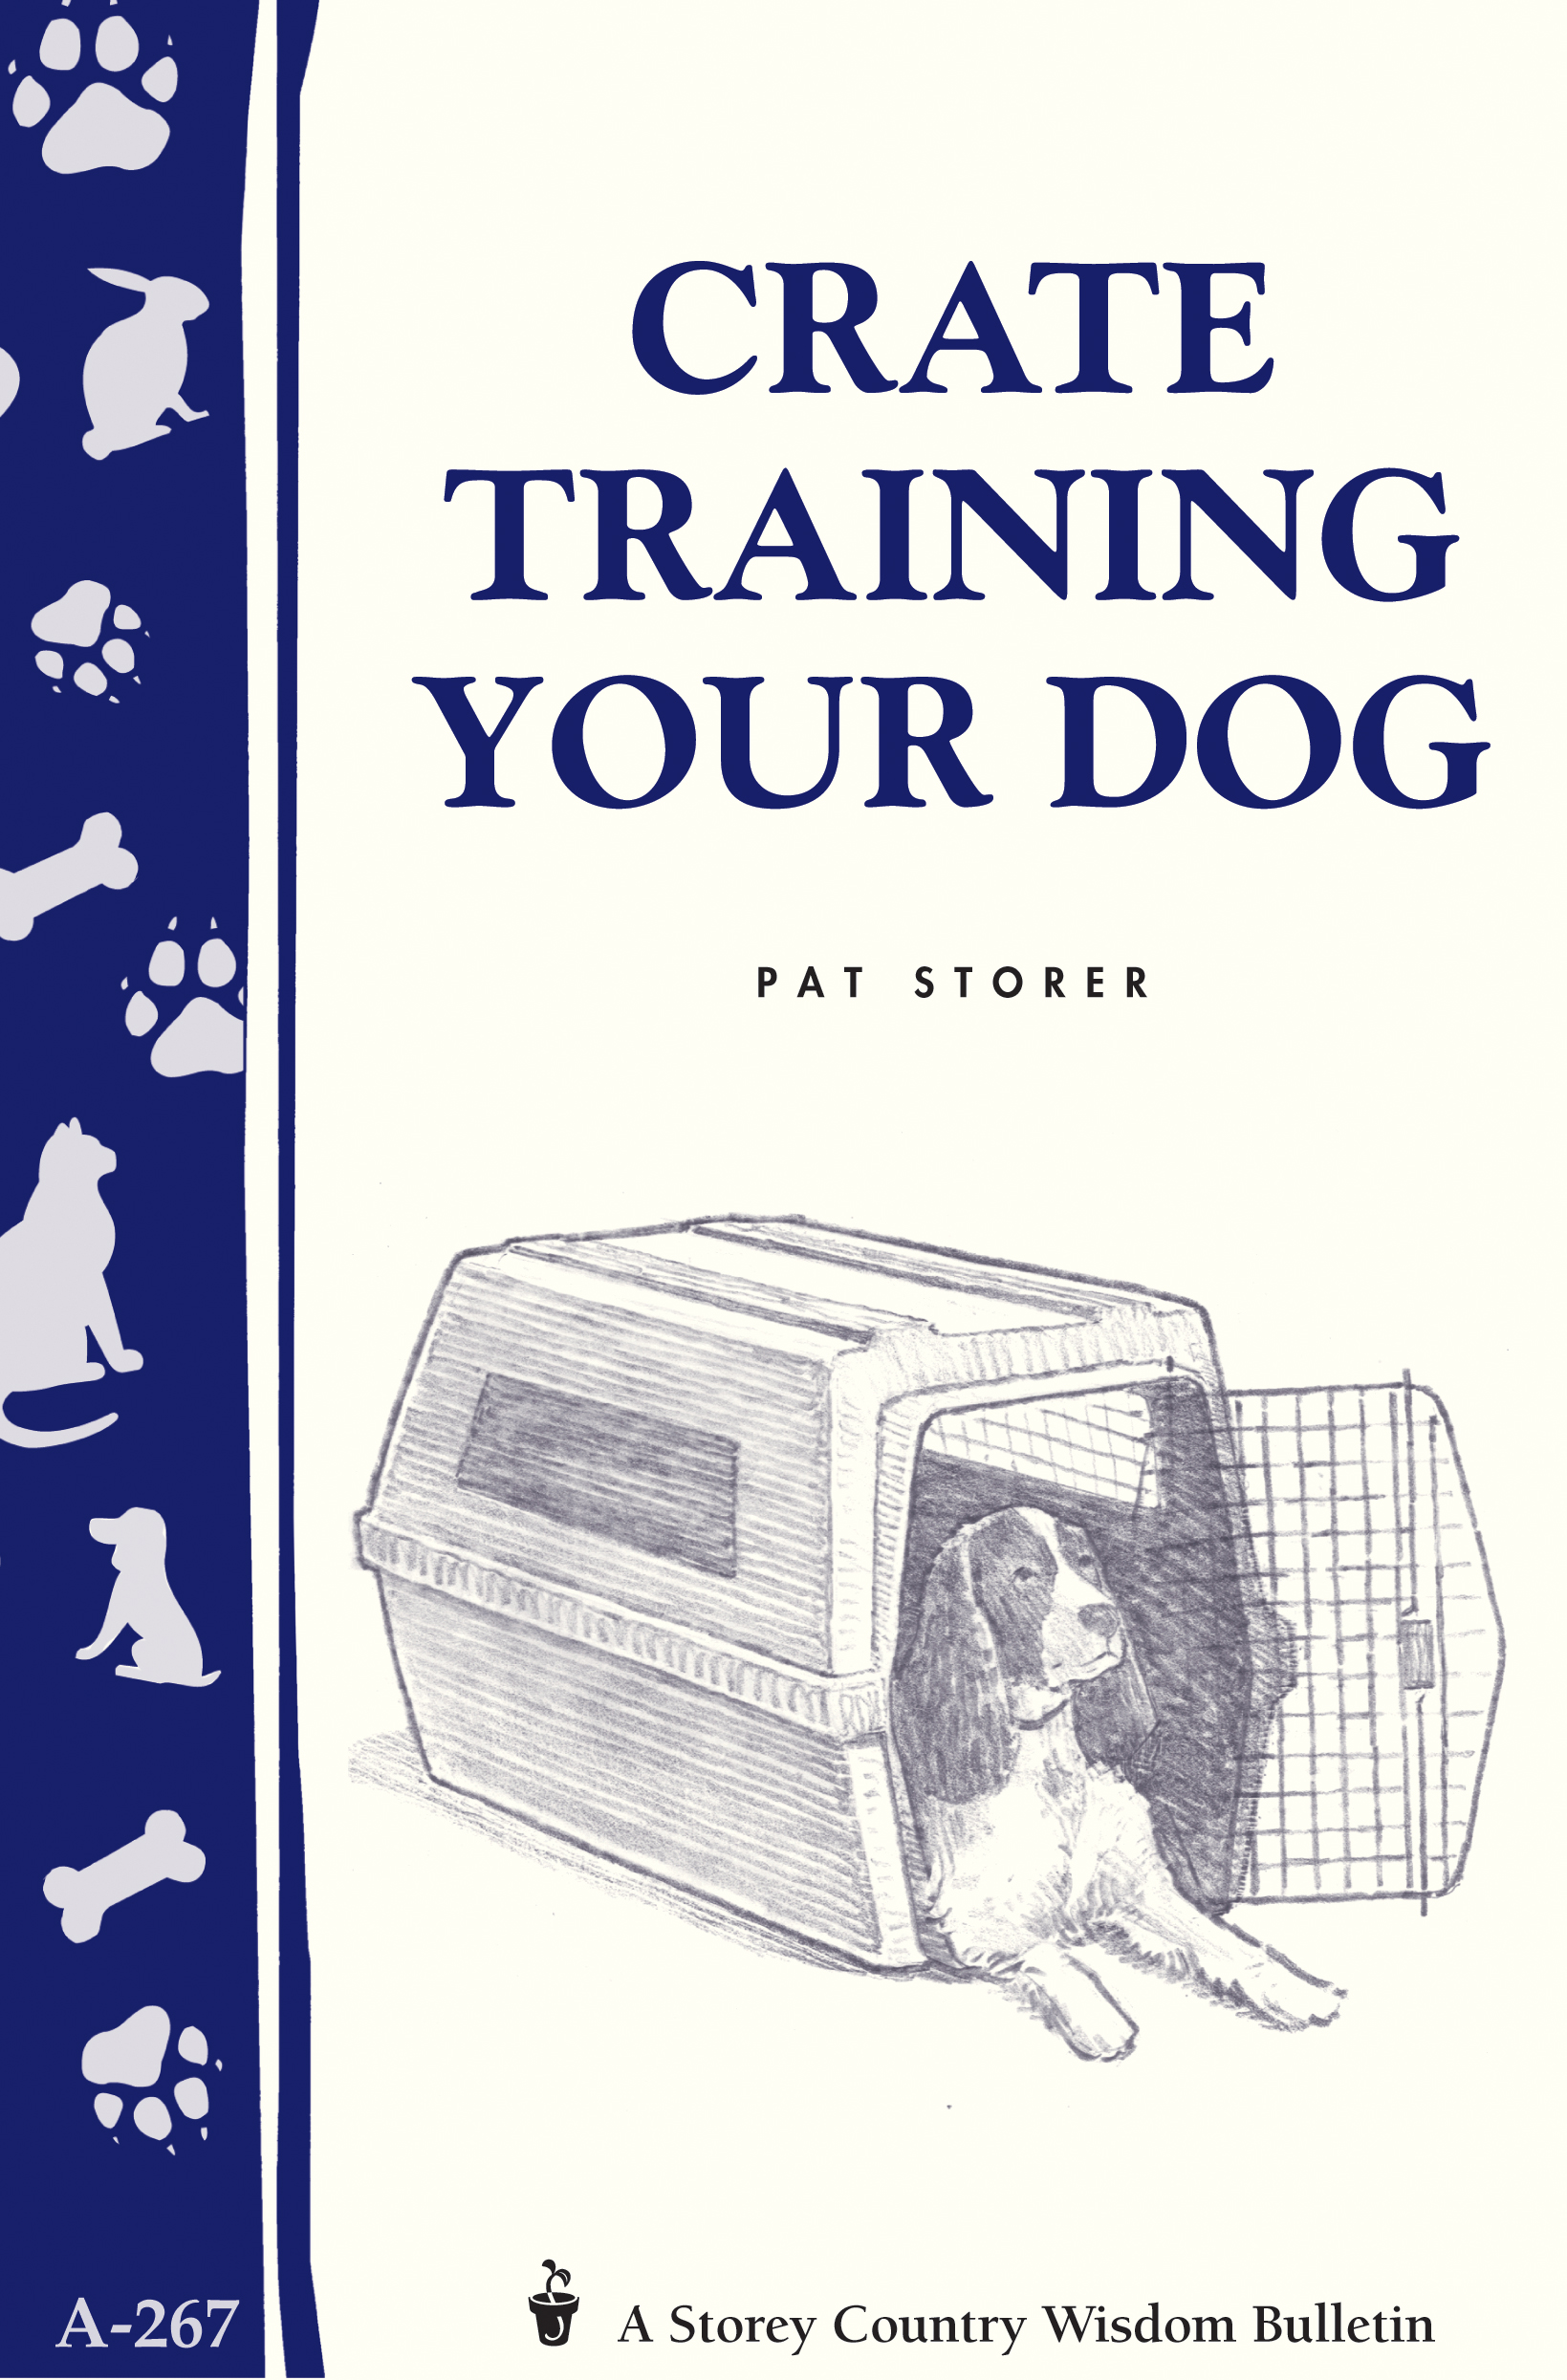 Crate Training Your Dog Storey's Country Wisdom Bulletin A-267 - Pat Storer